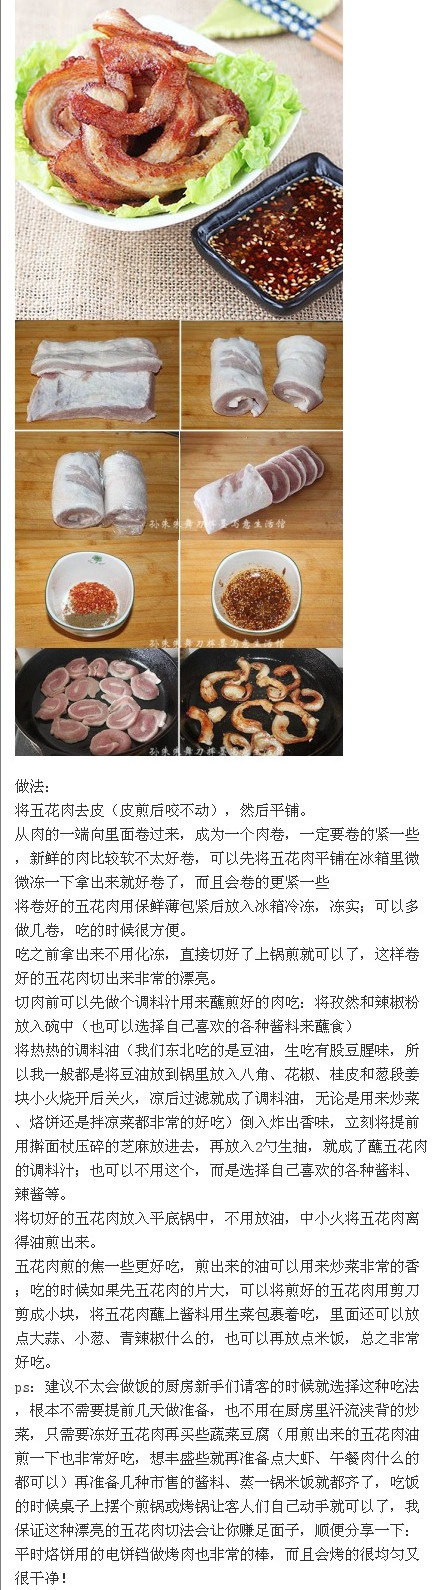 http://img2.pp.cc/attachment/weibo/content/201307/31/1803848_20130731150018.jpg